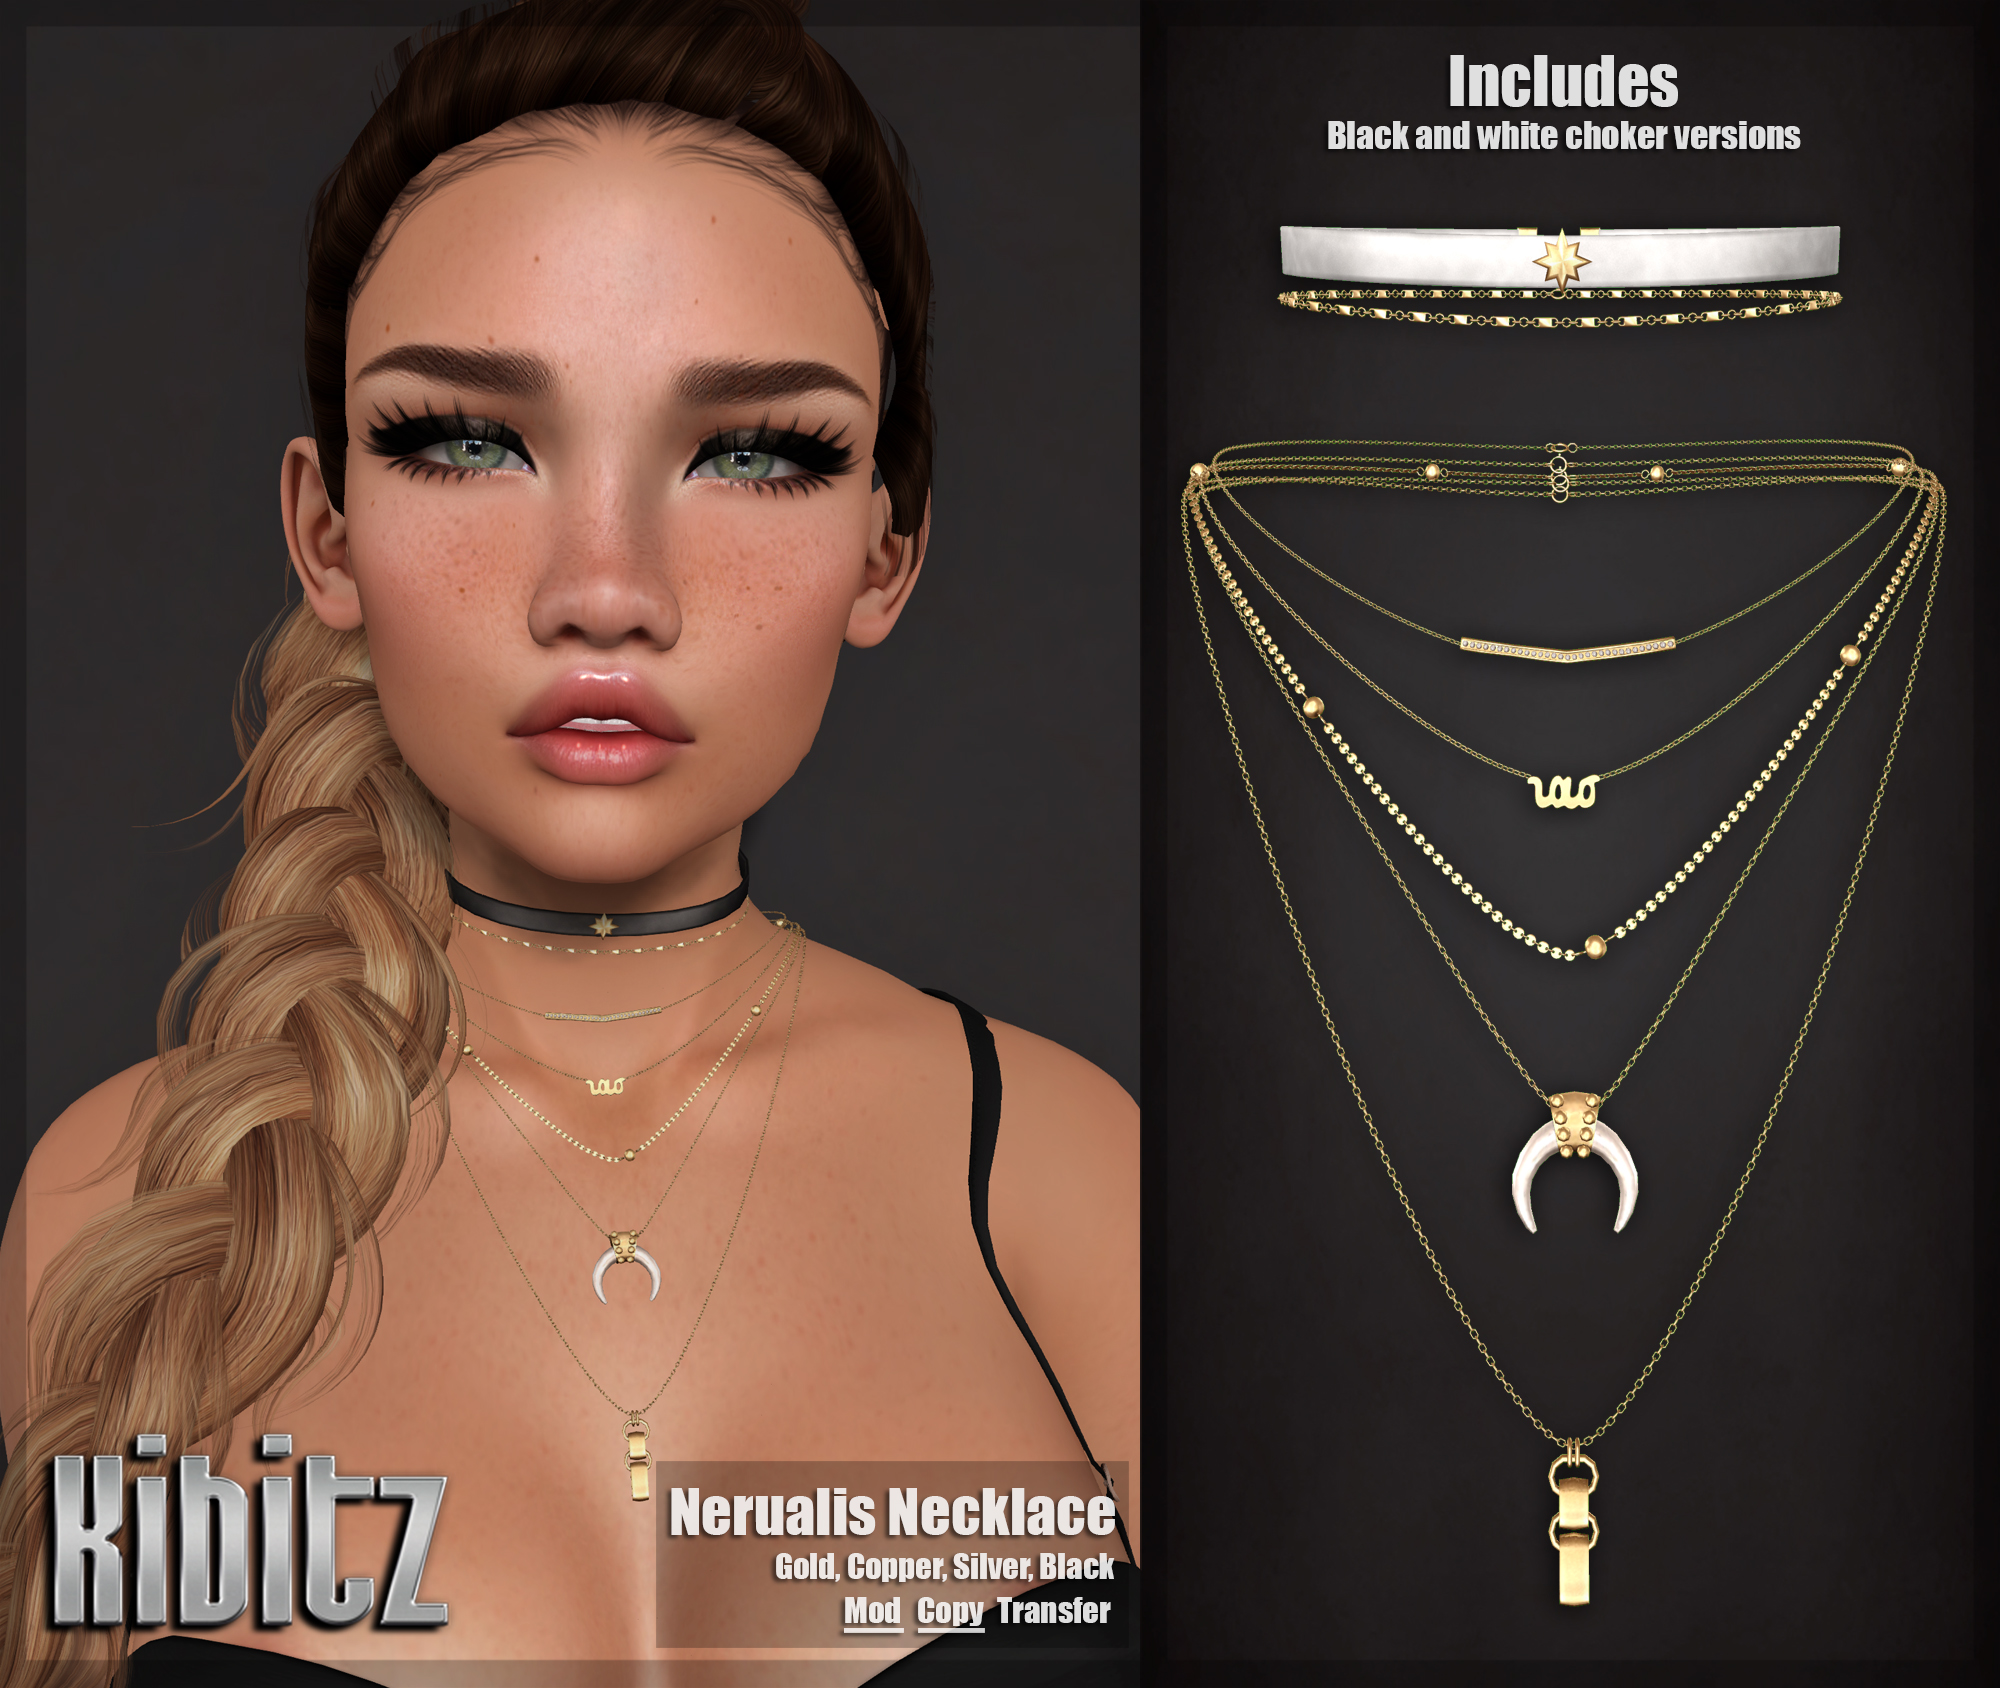 kibitz Nerualis necklace vendor.jpg